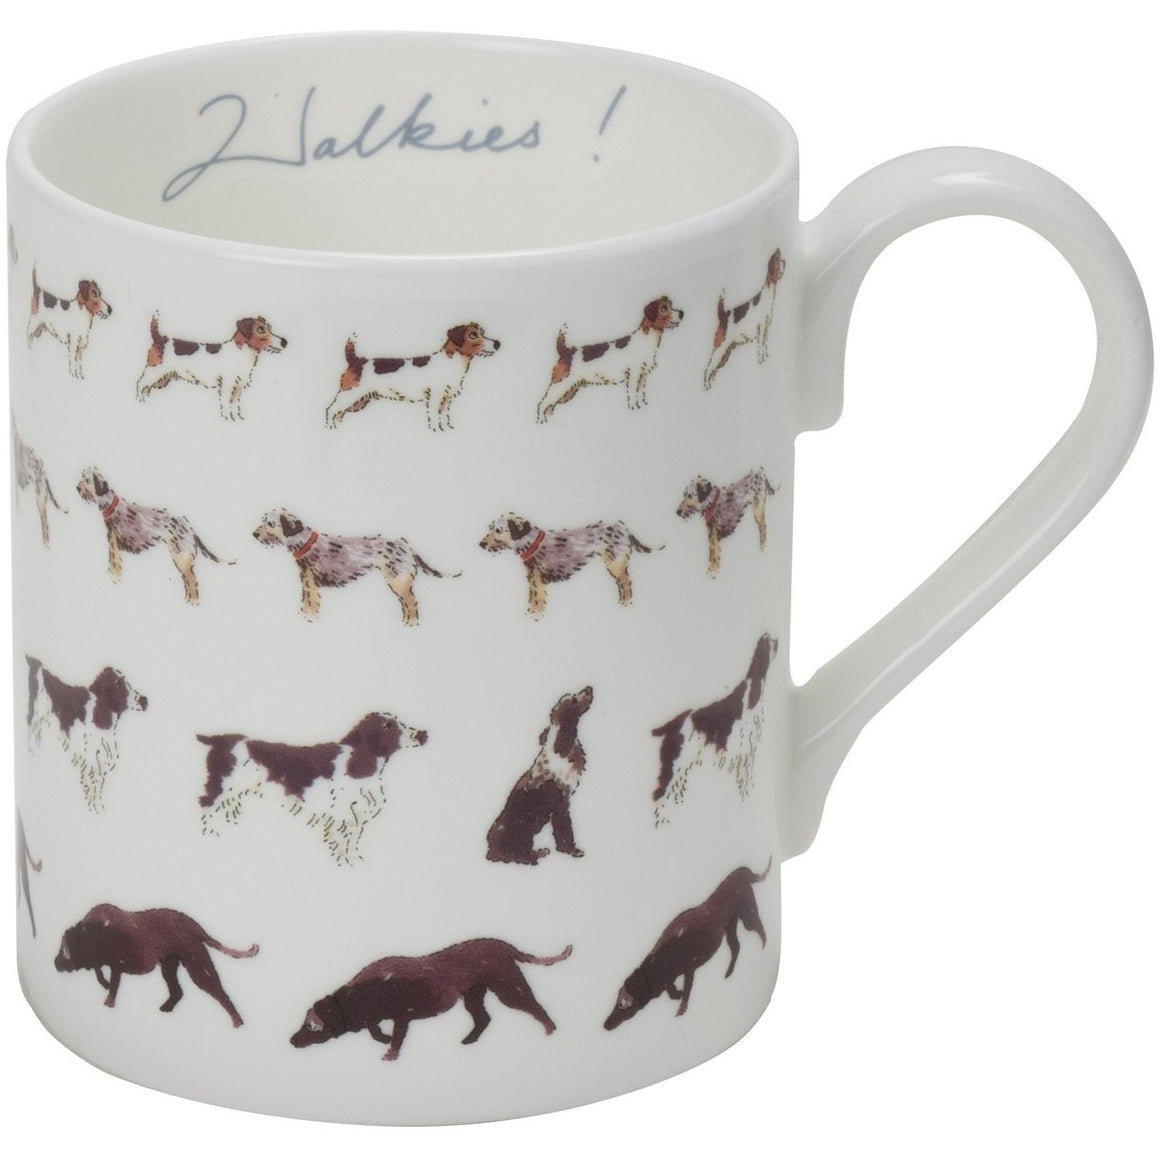 Sophie Allport Walkies Mug